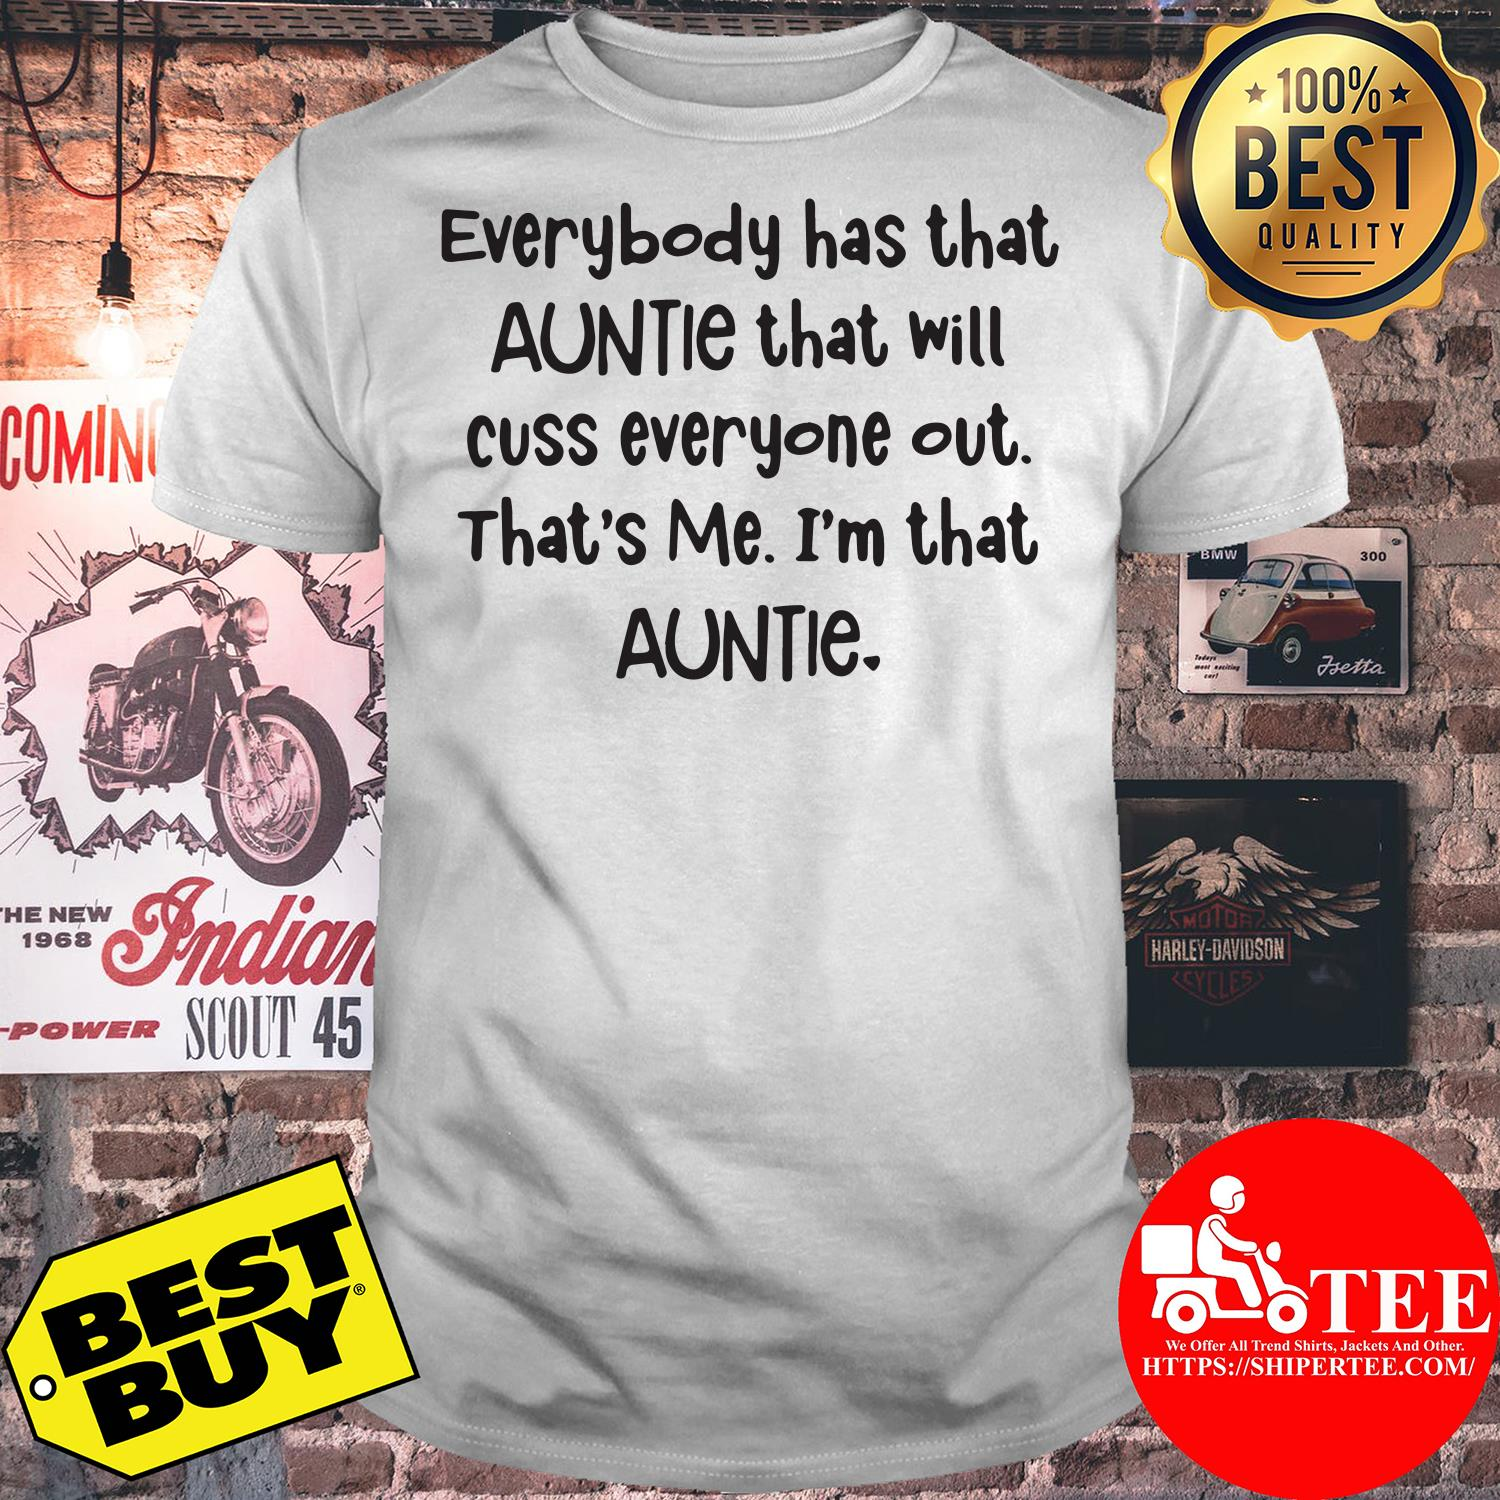 Everybody has that auntie that will cuss everyone out shirt